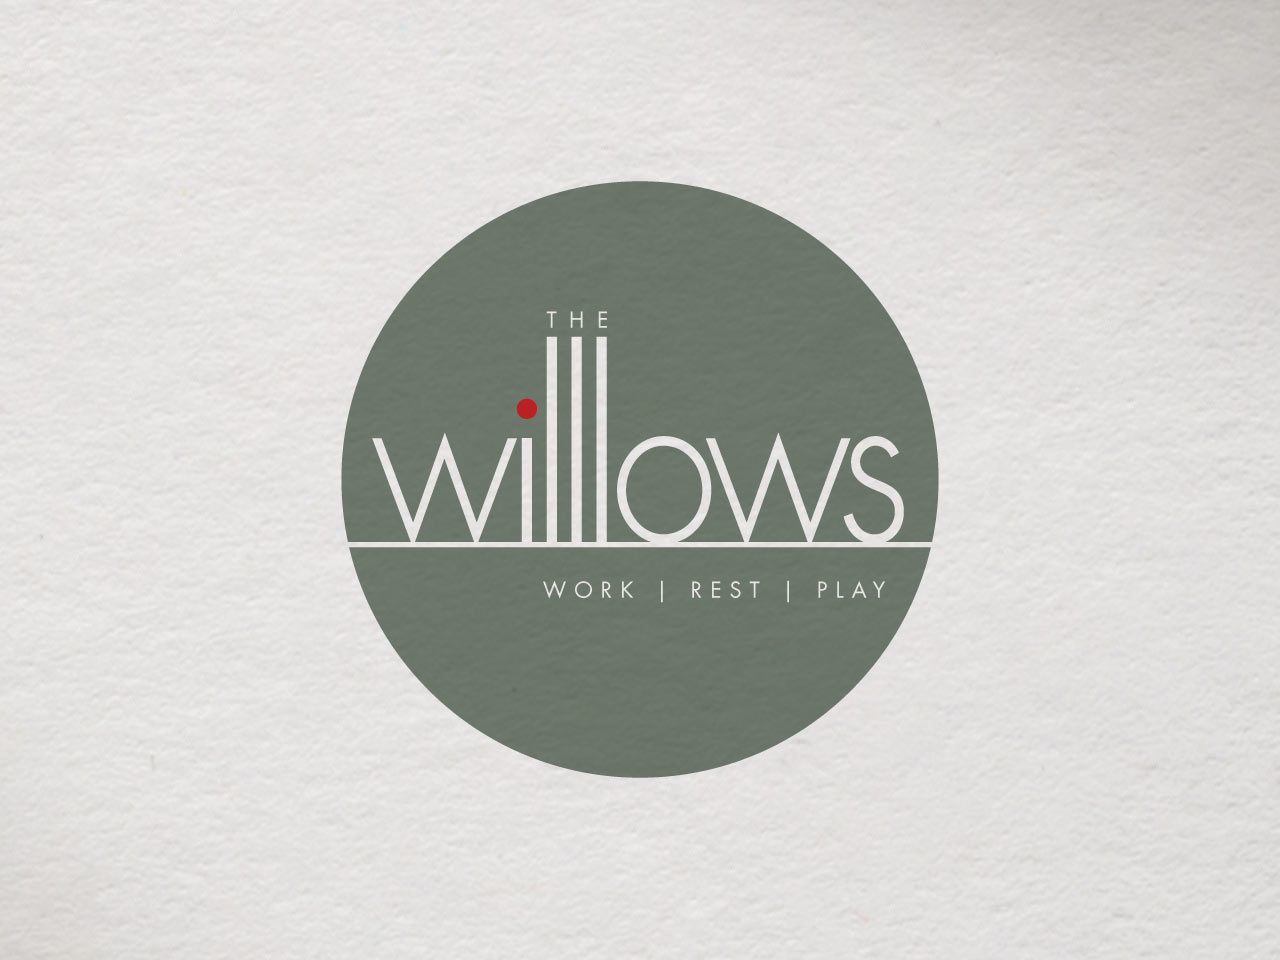 The Willows logo